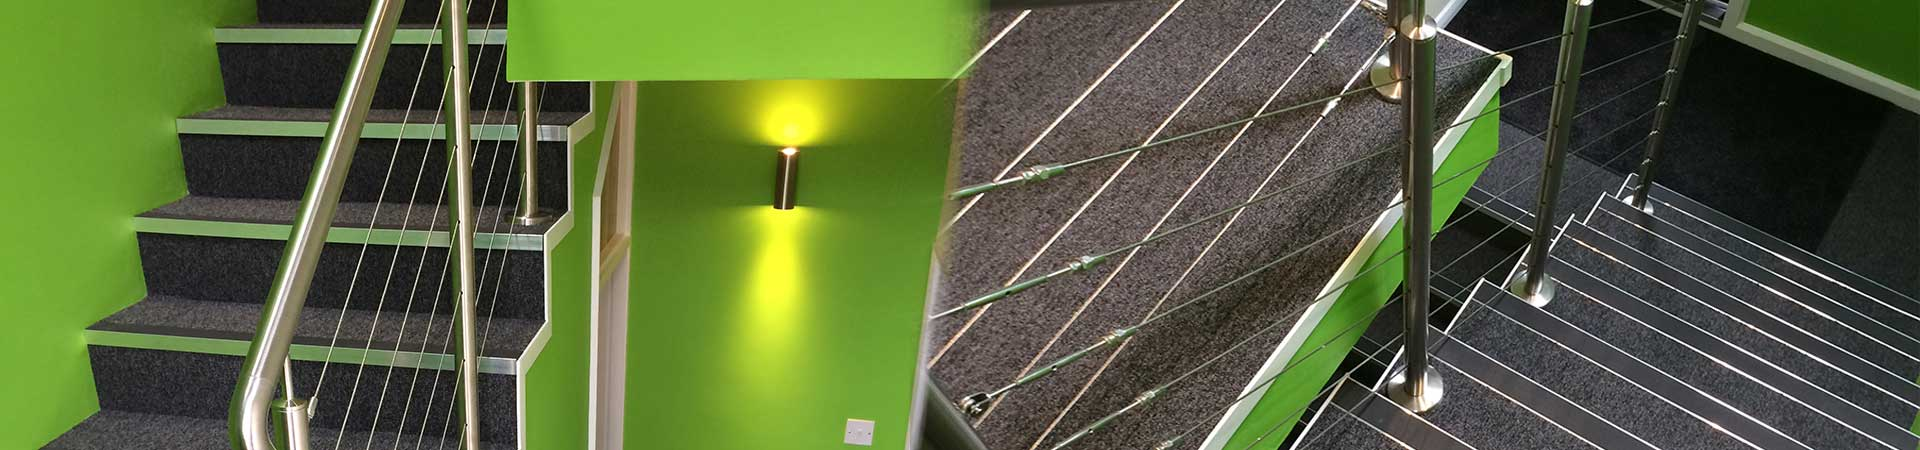 COMMERCIAL STAIR FLOORING